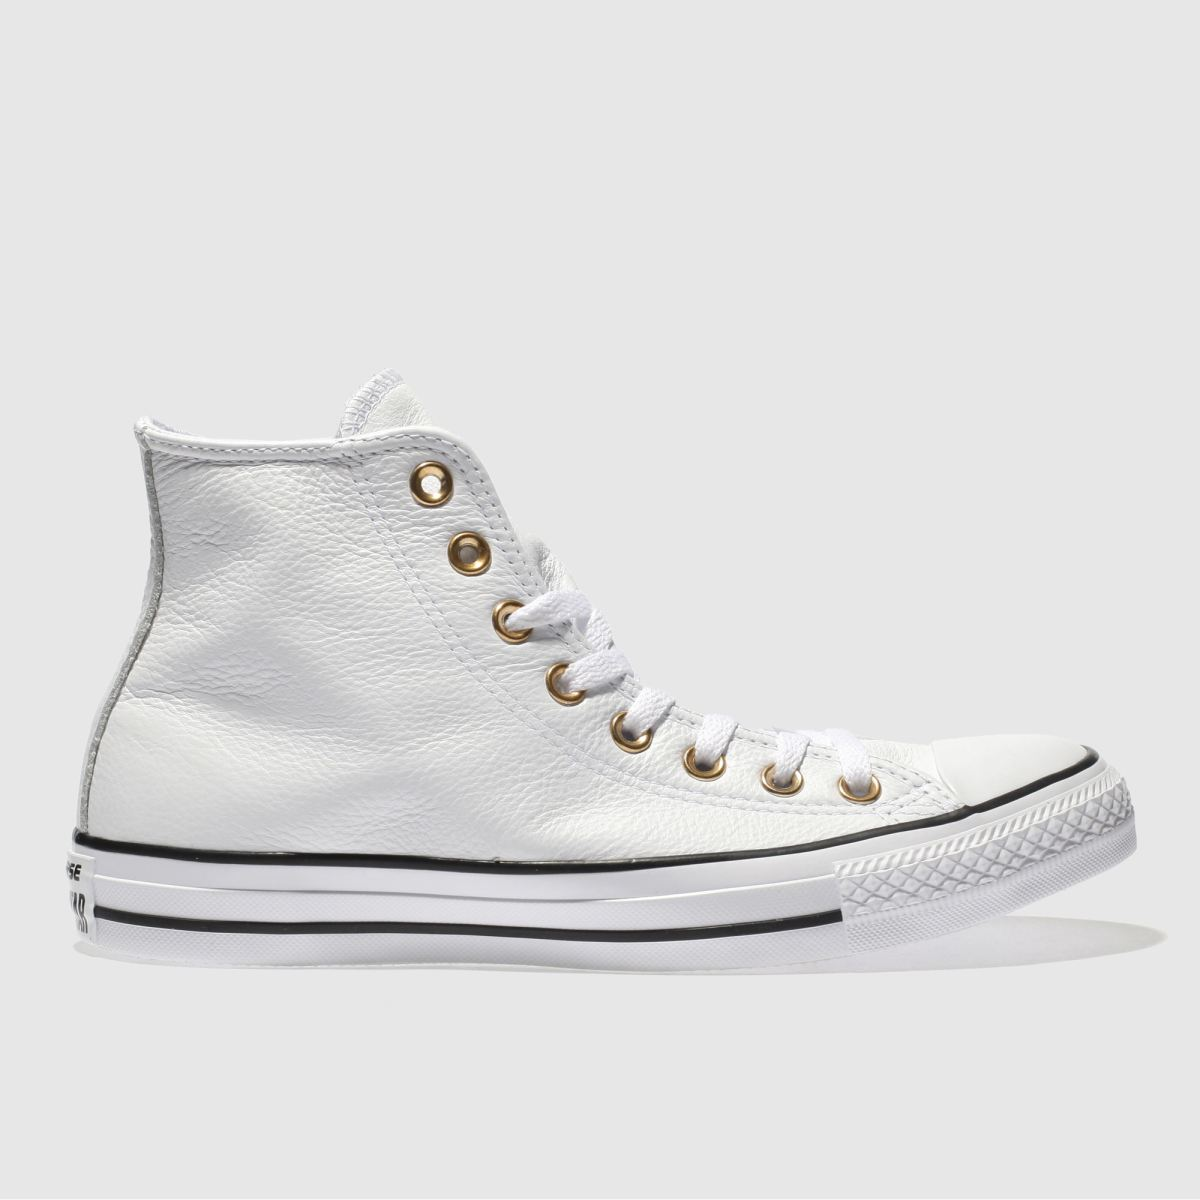 Converse White & Gold Rose Gold Eyelets Hi Trainers